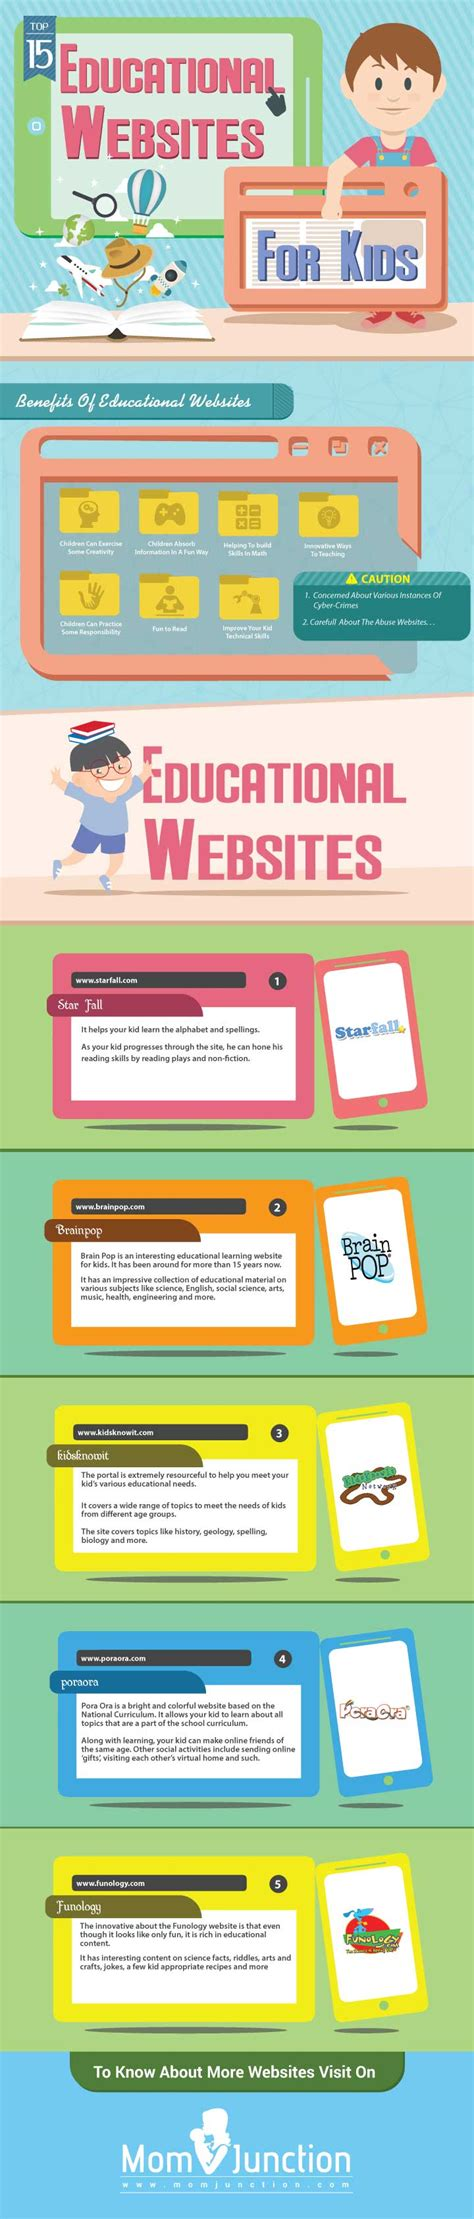 infographic best educational websites for kids edtechreview etr